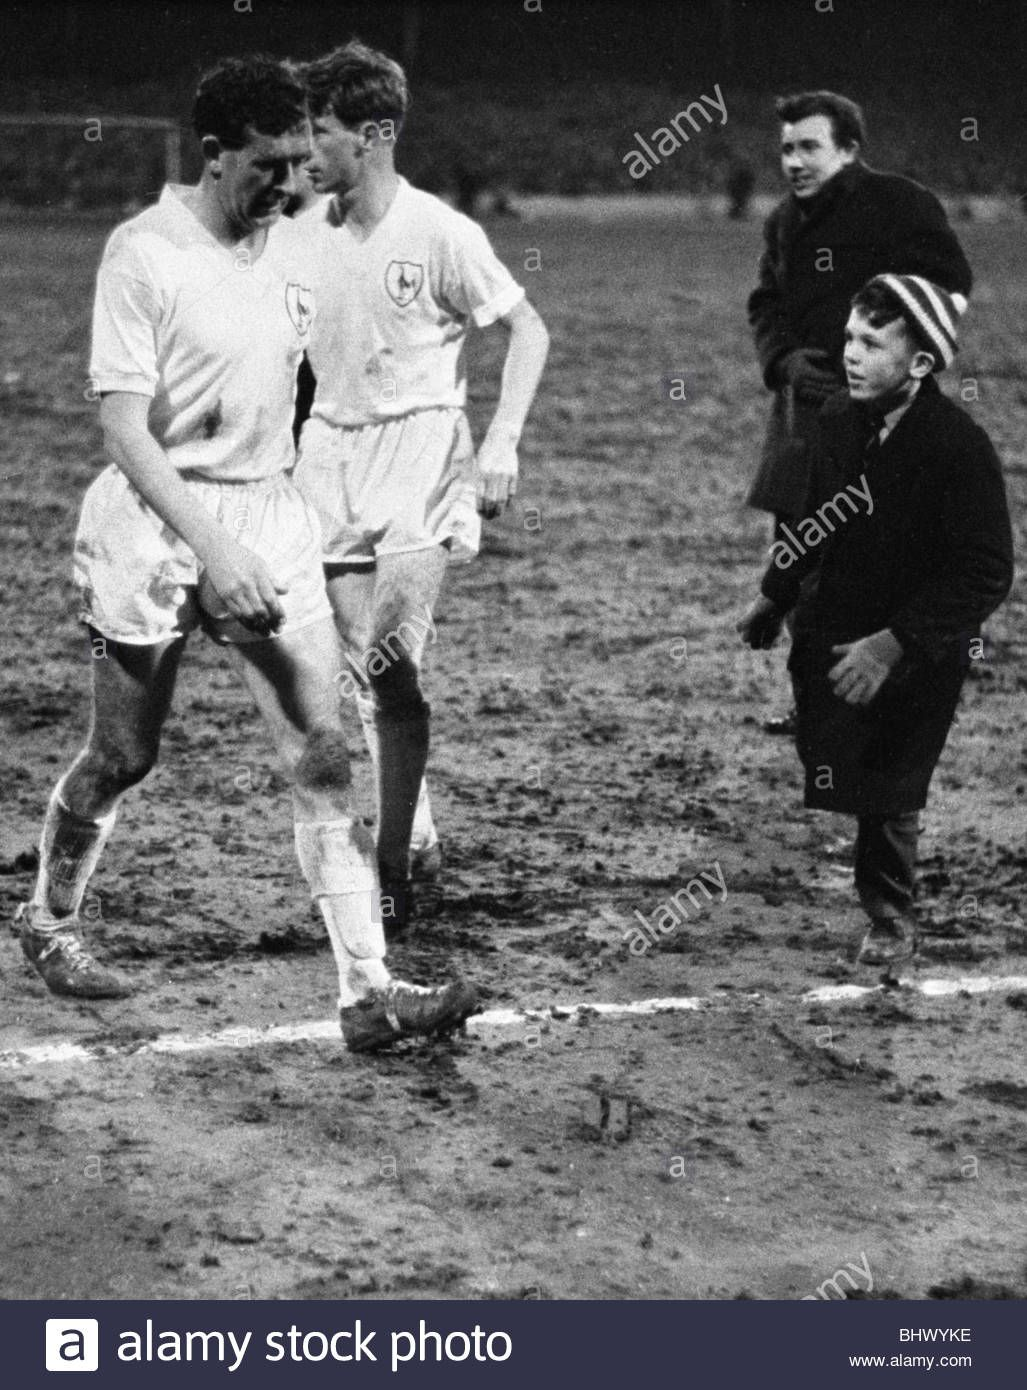 5th April 1962 Tottenham duo Danny Blanchflower and John White go